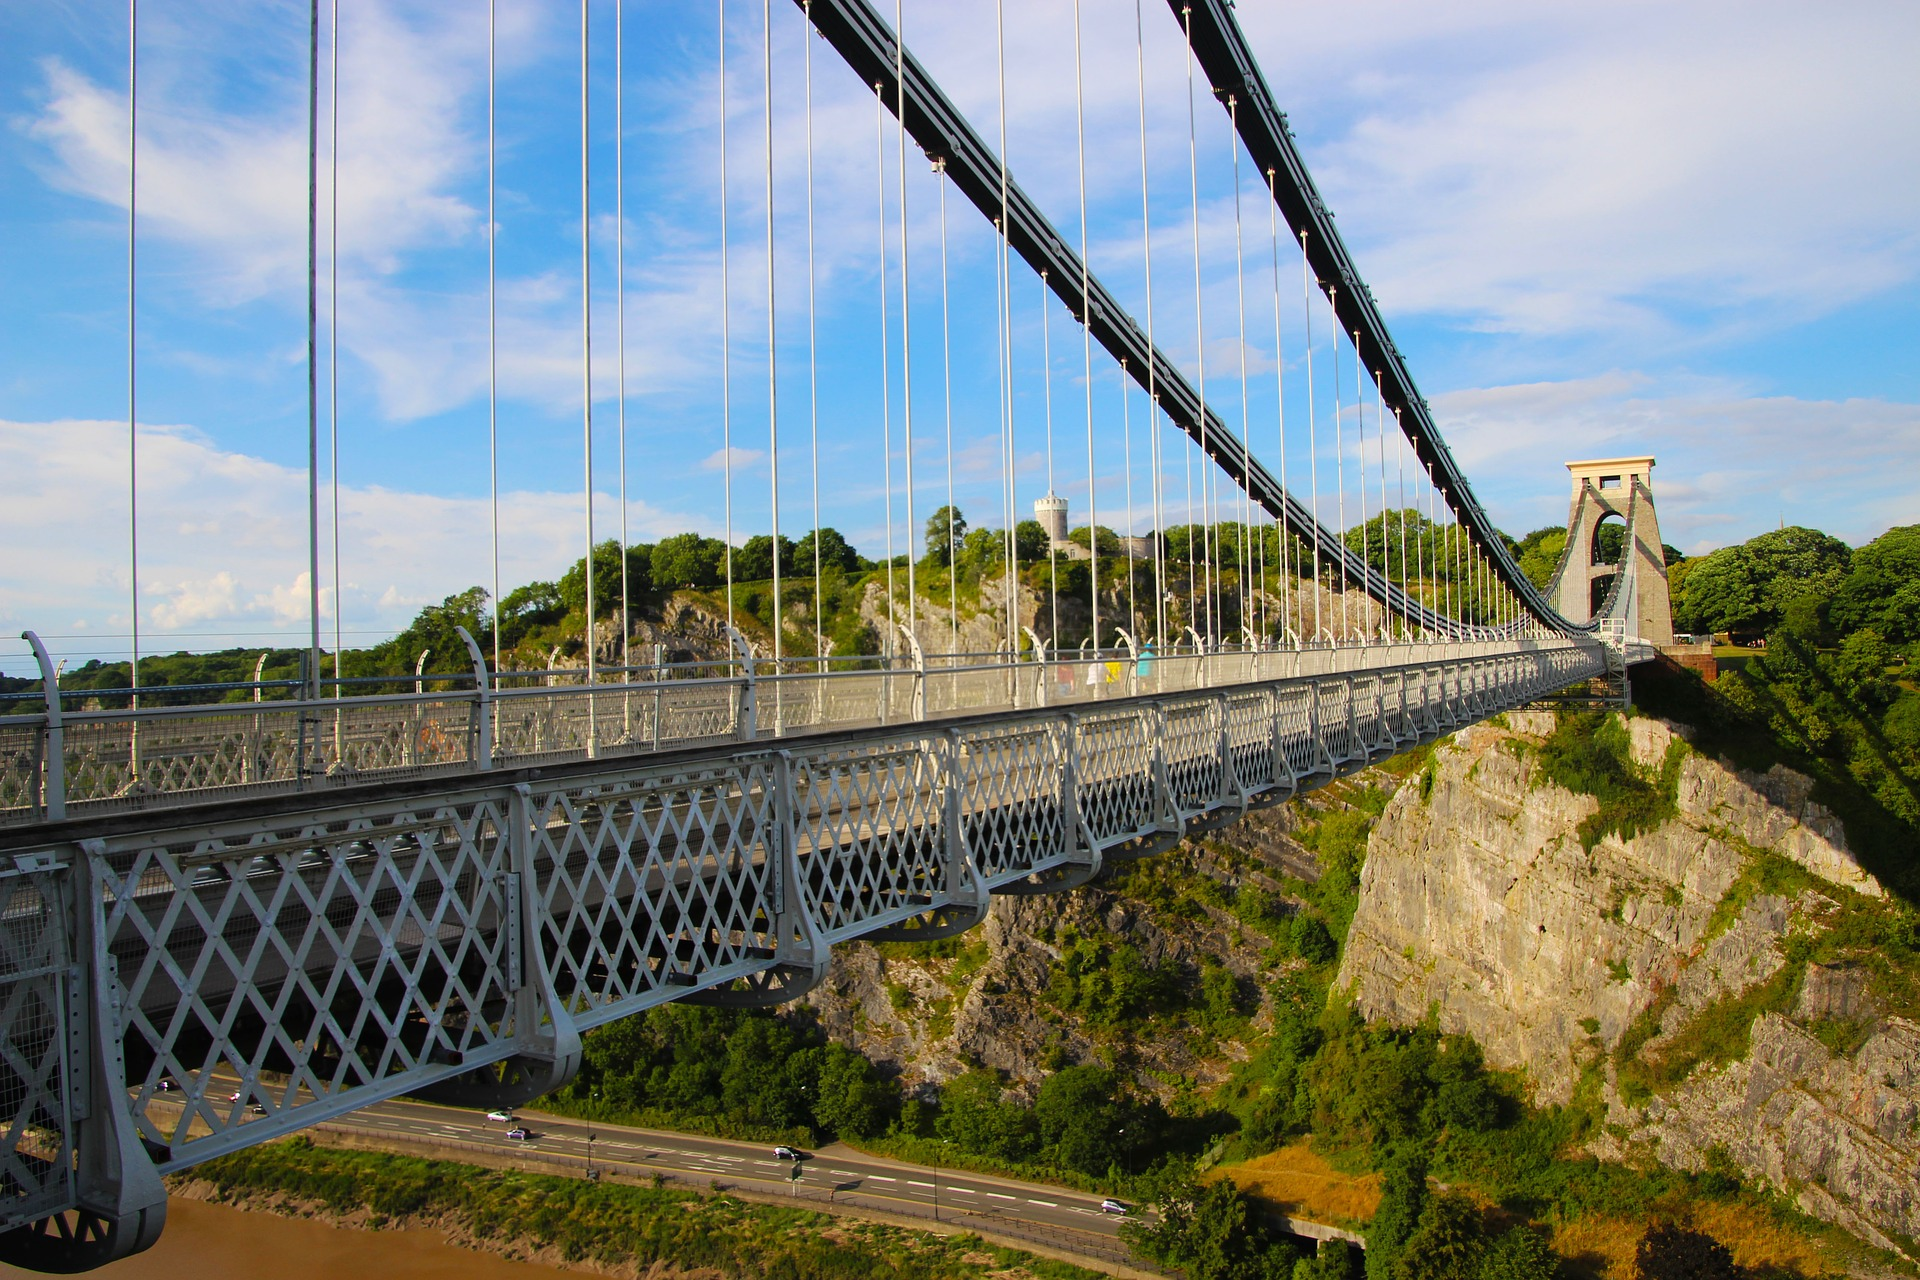 clifton-suspension-bridge-2502001_1920.jpg